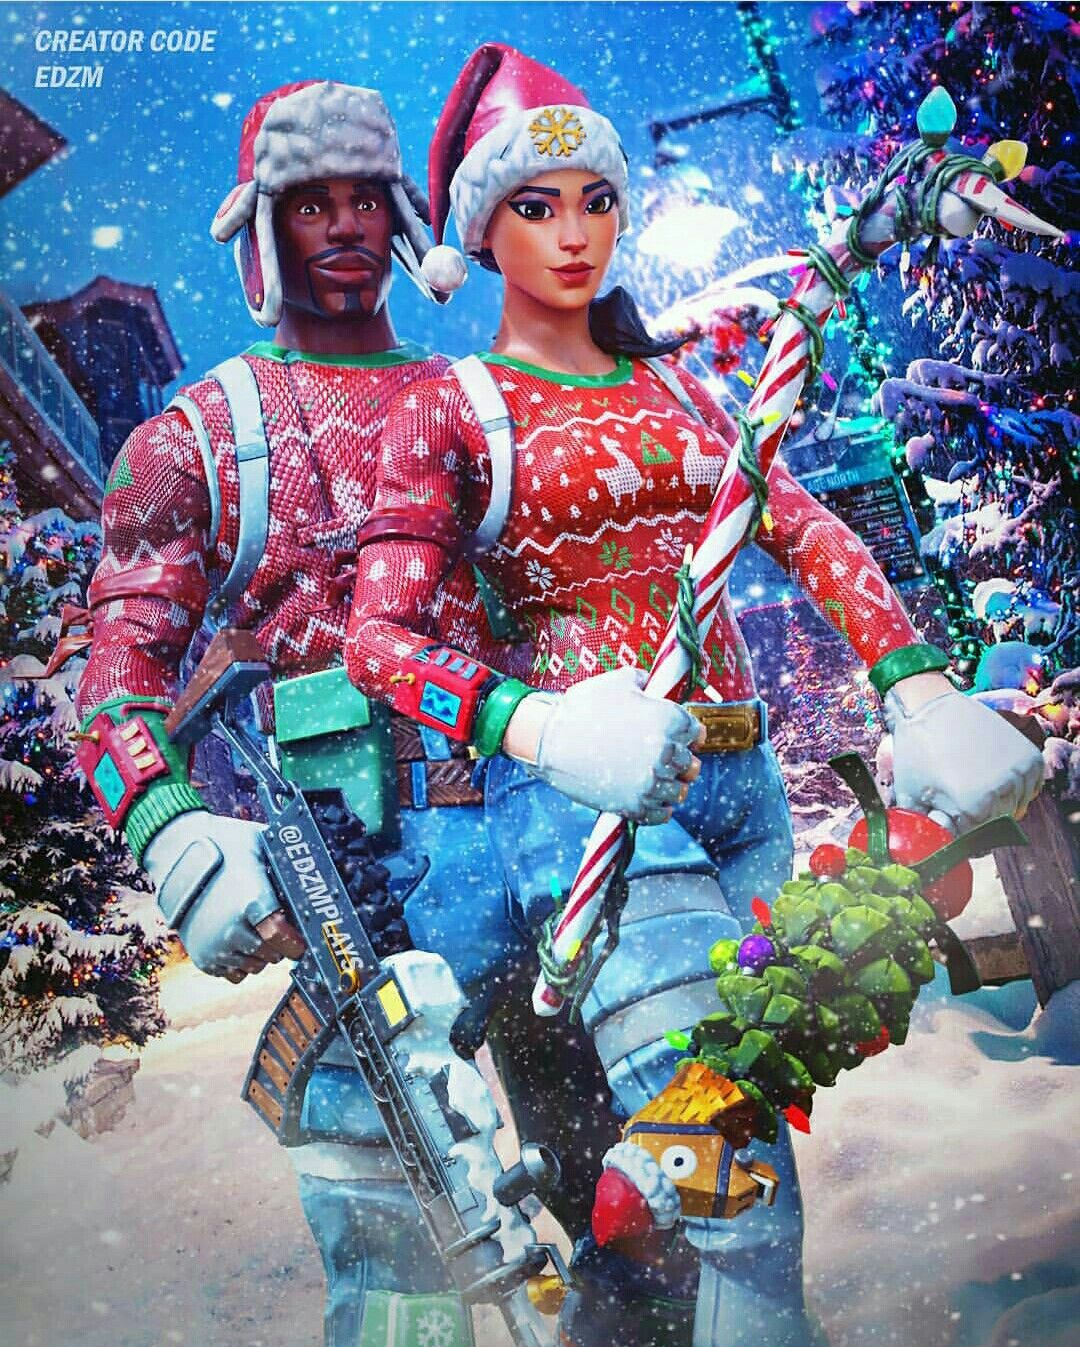 Merry Christmas Fortnite Best Gaming Wallpapers Best Profile Pictures Cute Couple Pictures